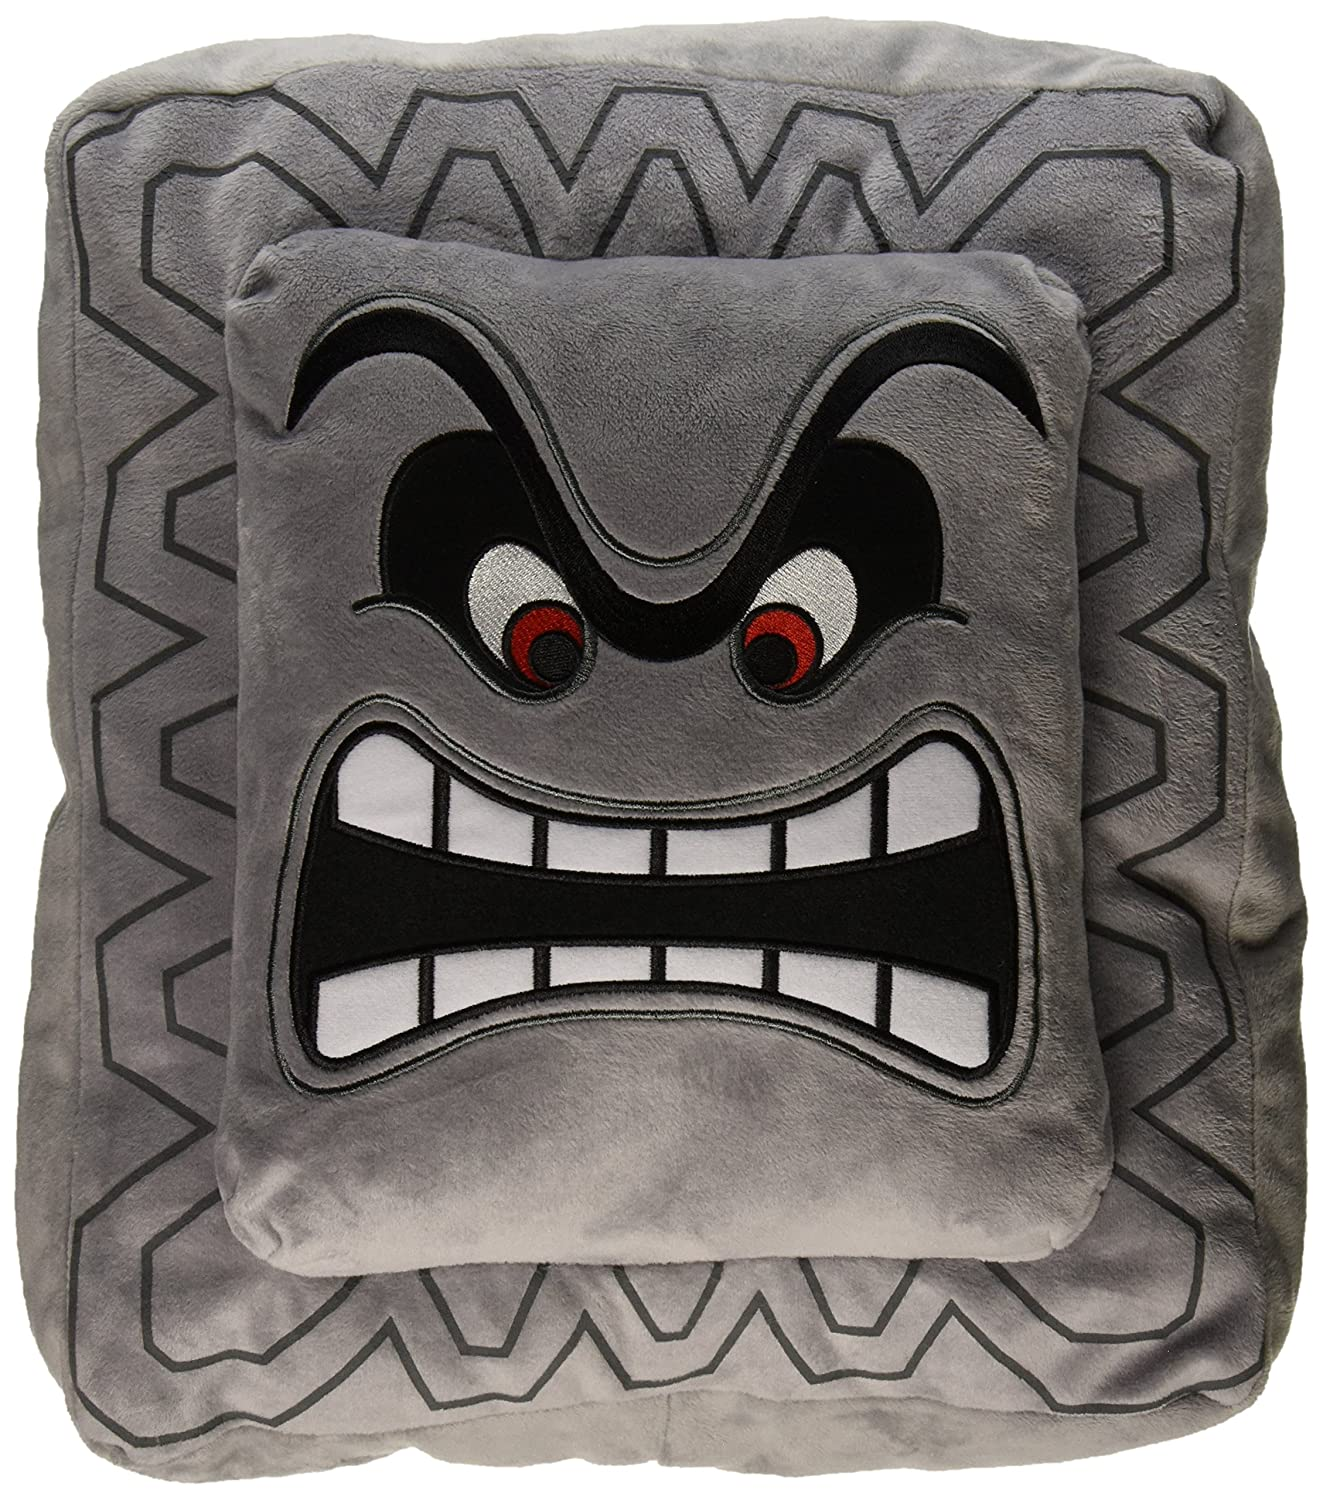 Little Buddy Super Mario Bros 12-Inch Thwomp Pillow Cushion Plush 1261 Accessory Consumer Accessories